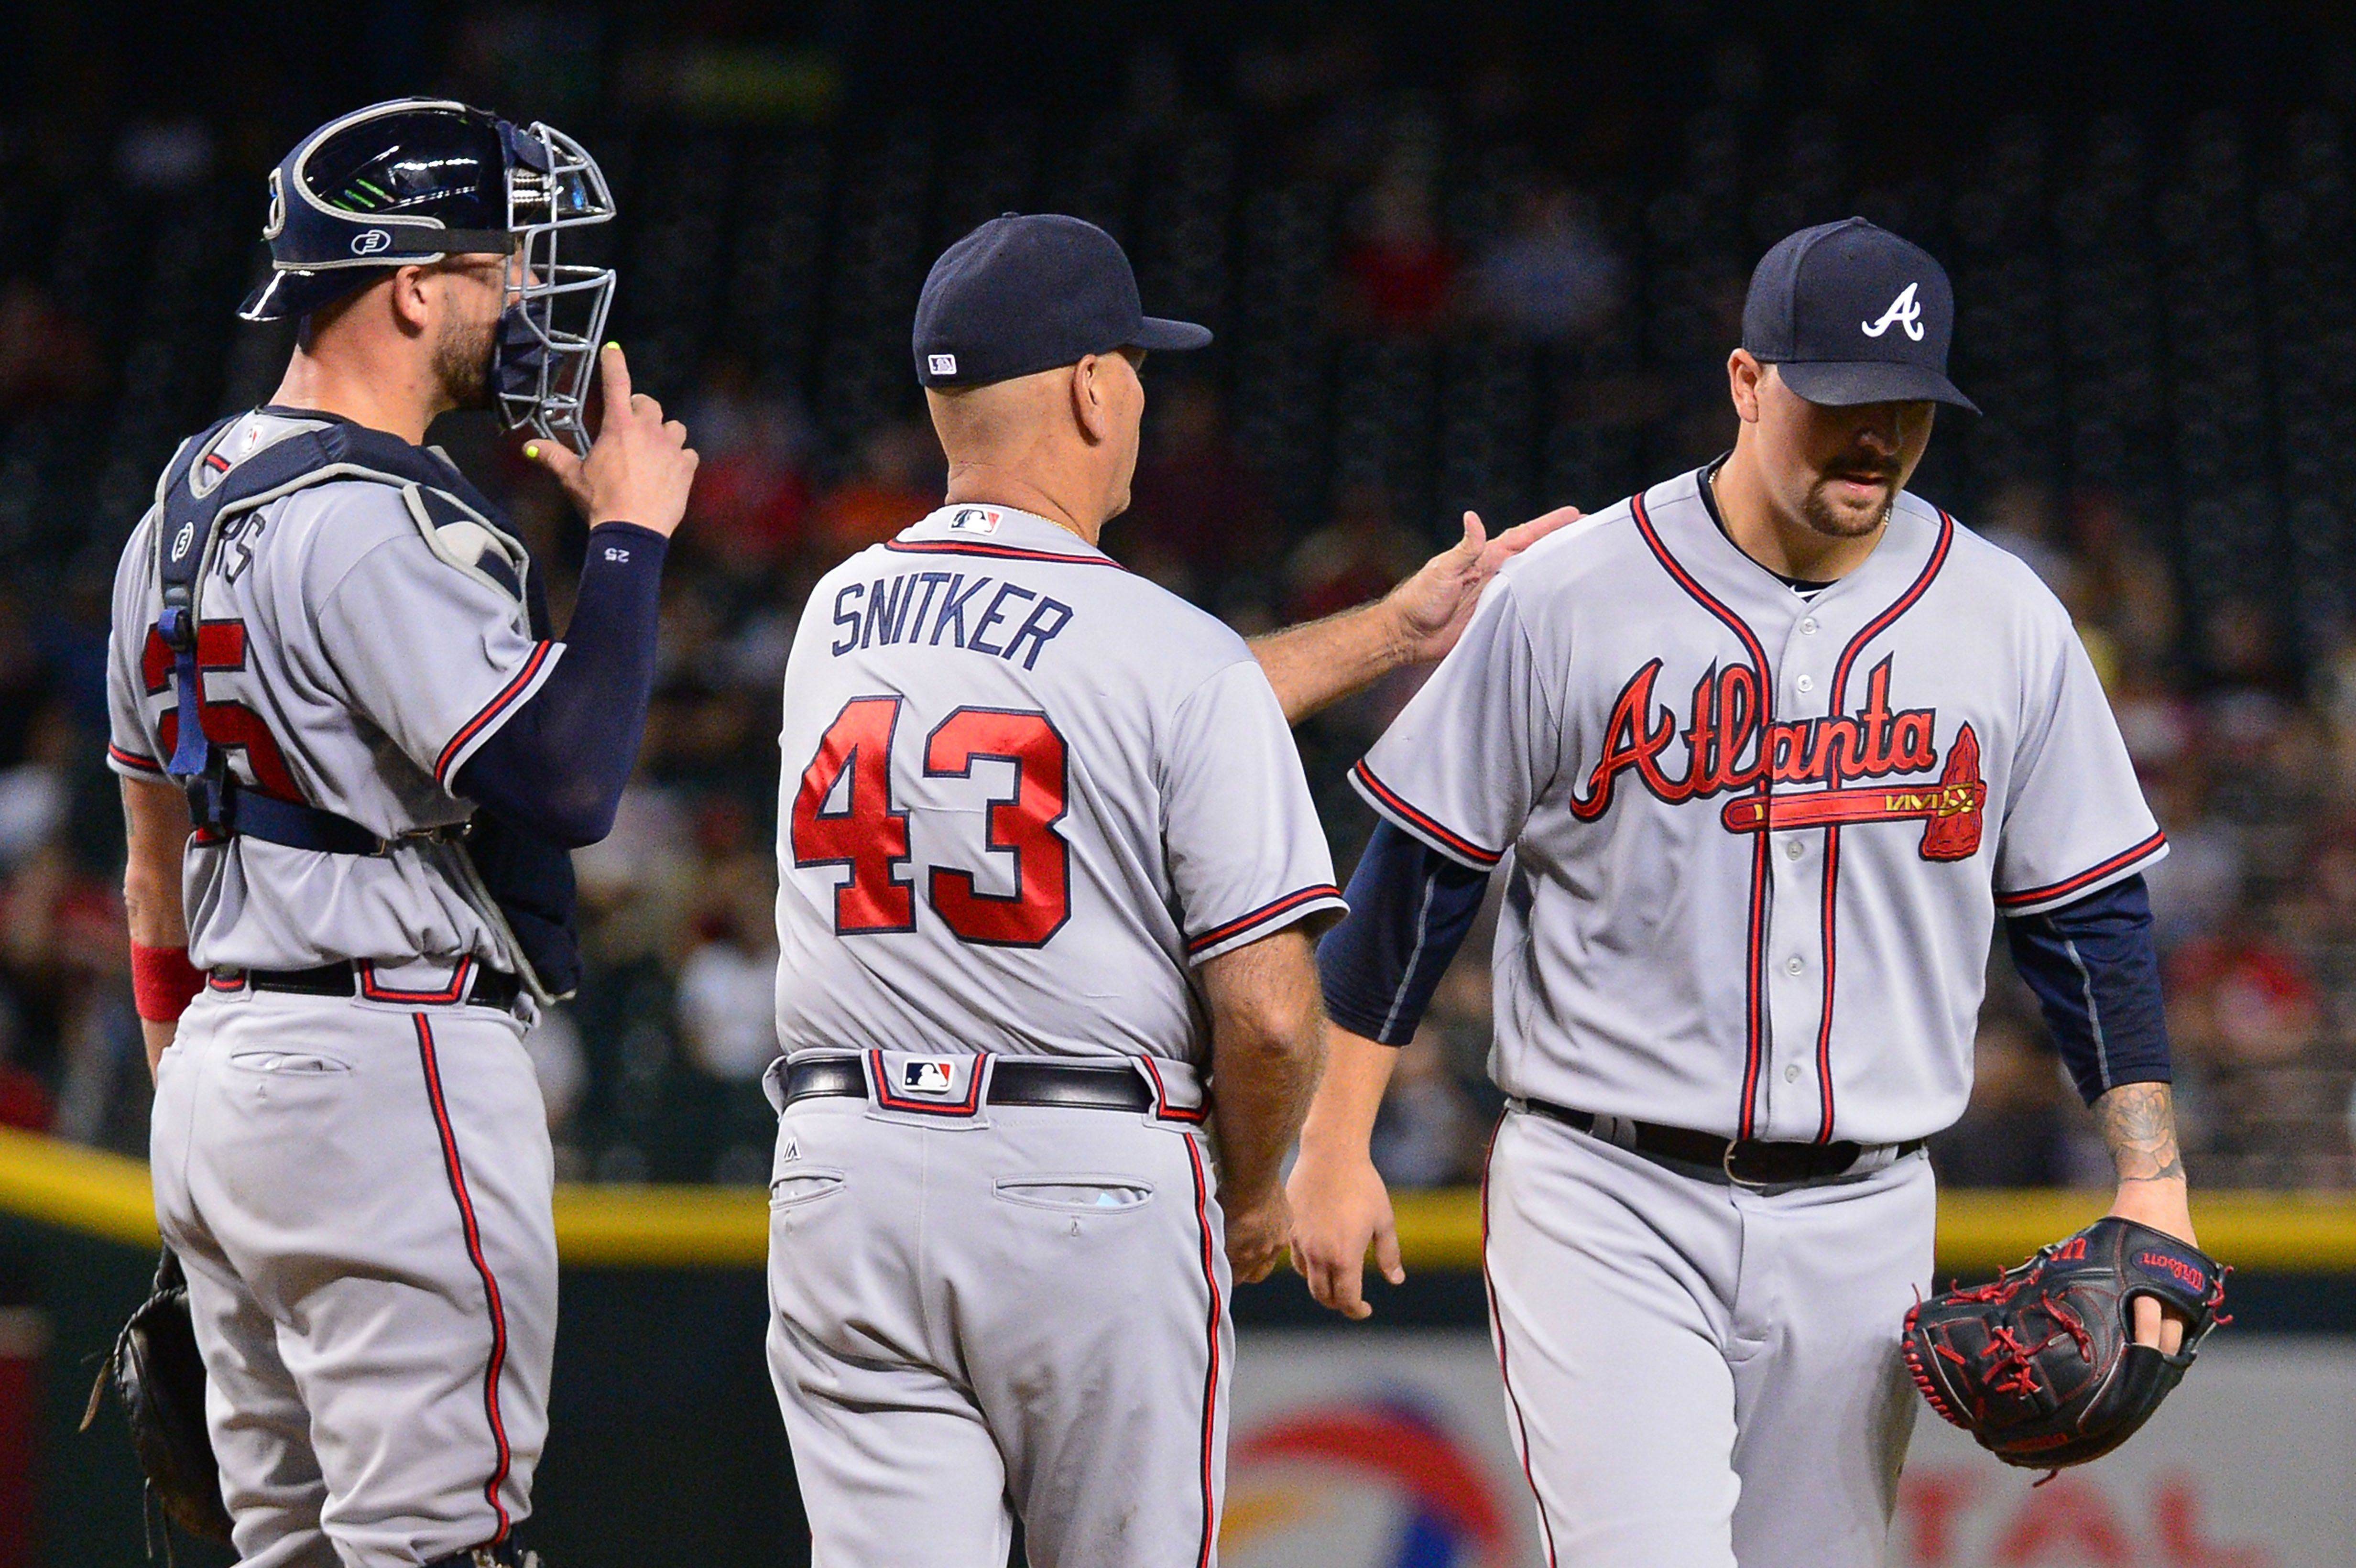 PHOENIX, AZ - AUGUST 23: Brian Snitker #43 of the Atlanta Braves relieves Rob Whalen #63 in the third inning of the game Arizona Diamondbacks at Chase Field on August 23, 2016 in Phoenix, Arizona. (Photo by Jennifer Stewart/Getty Images)